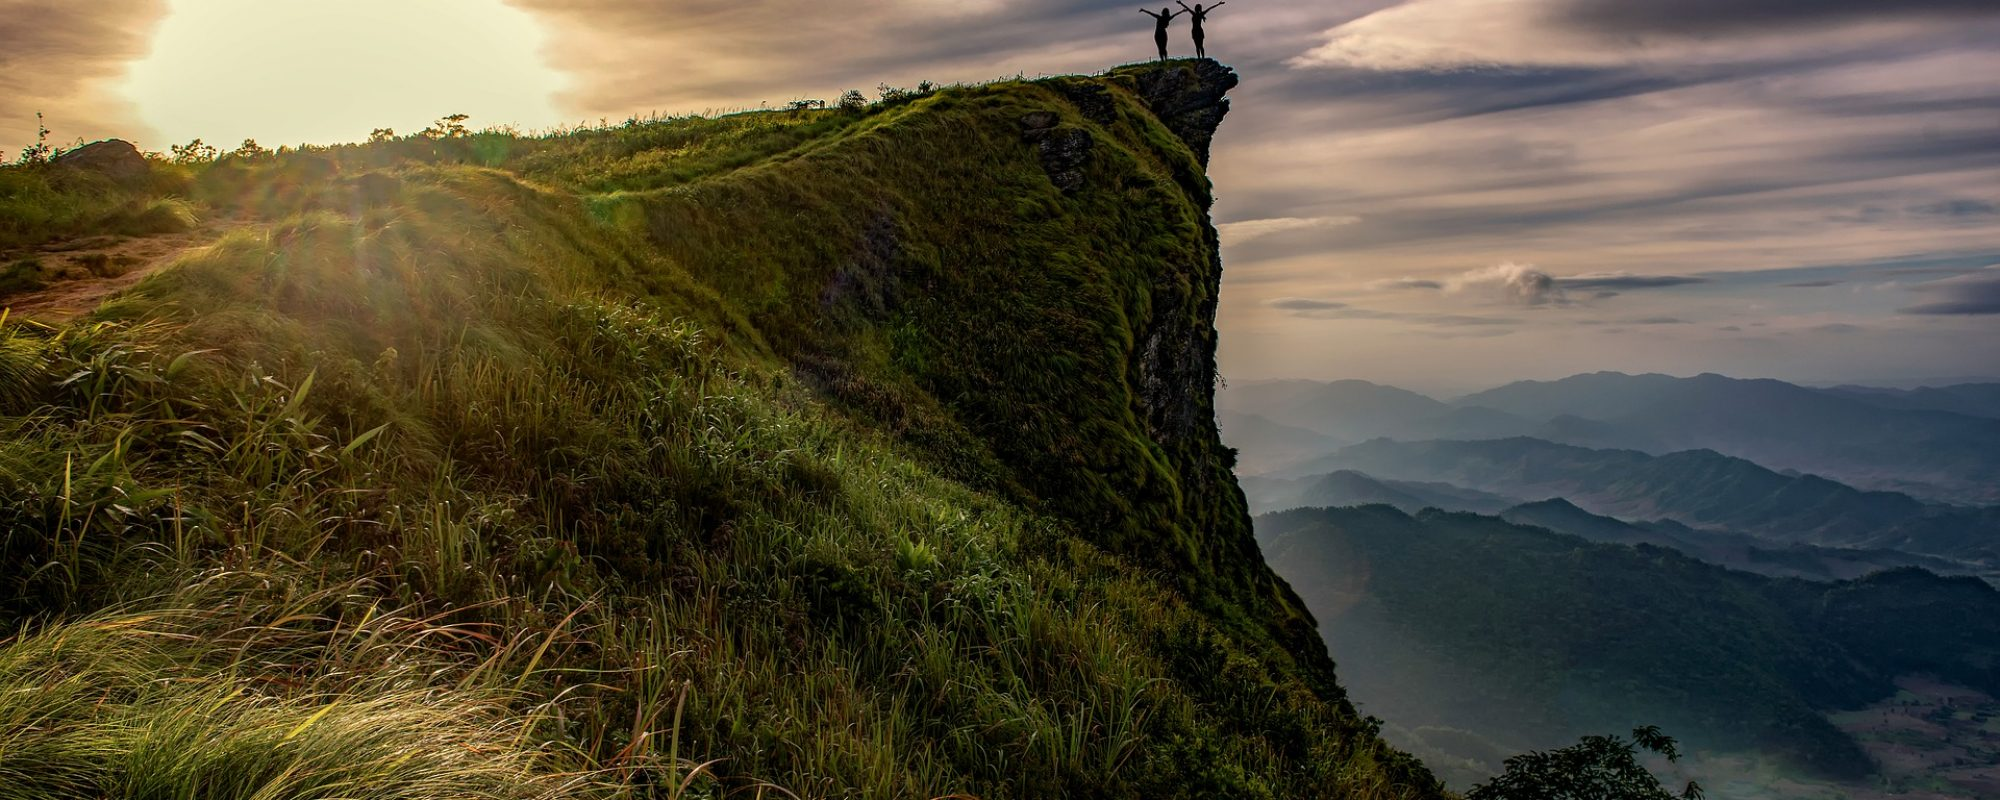 Moutain top with two people overlooking the sunset to the left, against a dark blue sky